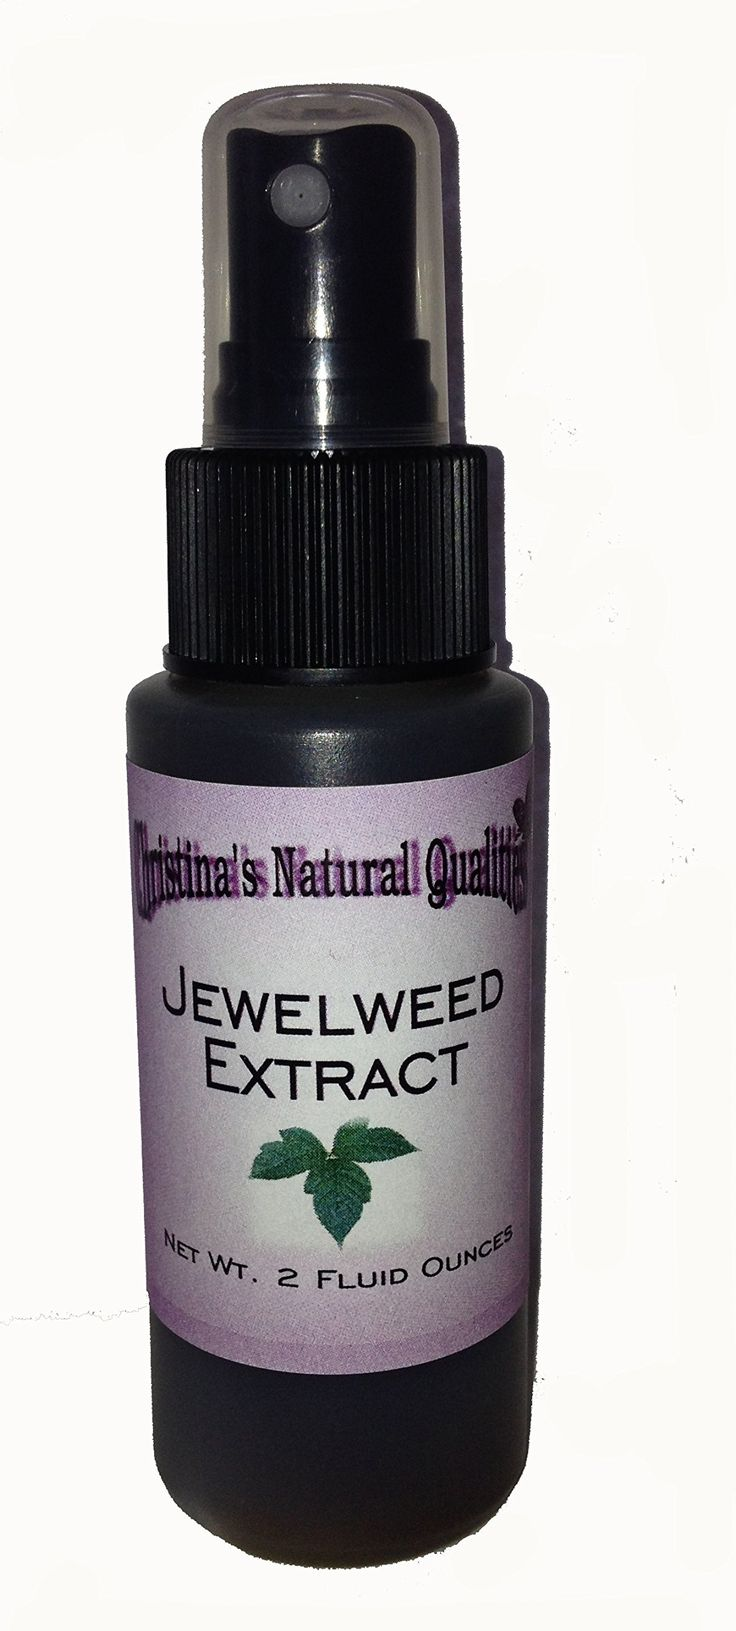 Jewelweed Extract Spritzer for Poison Ivy, Poison Oak. Relief and Prevention of Poison Ivy and Oak. Works Fast! 24-48 Hours. Instant Itch Relief. Convenient Spray Bottle.